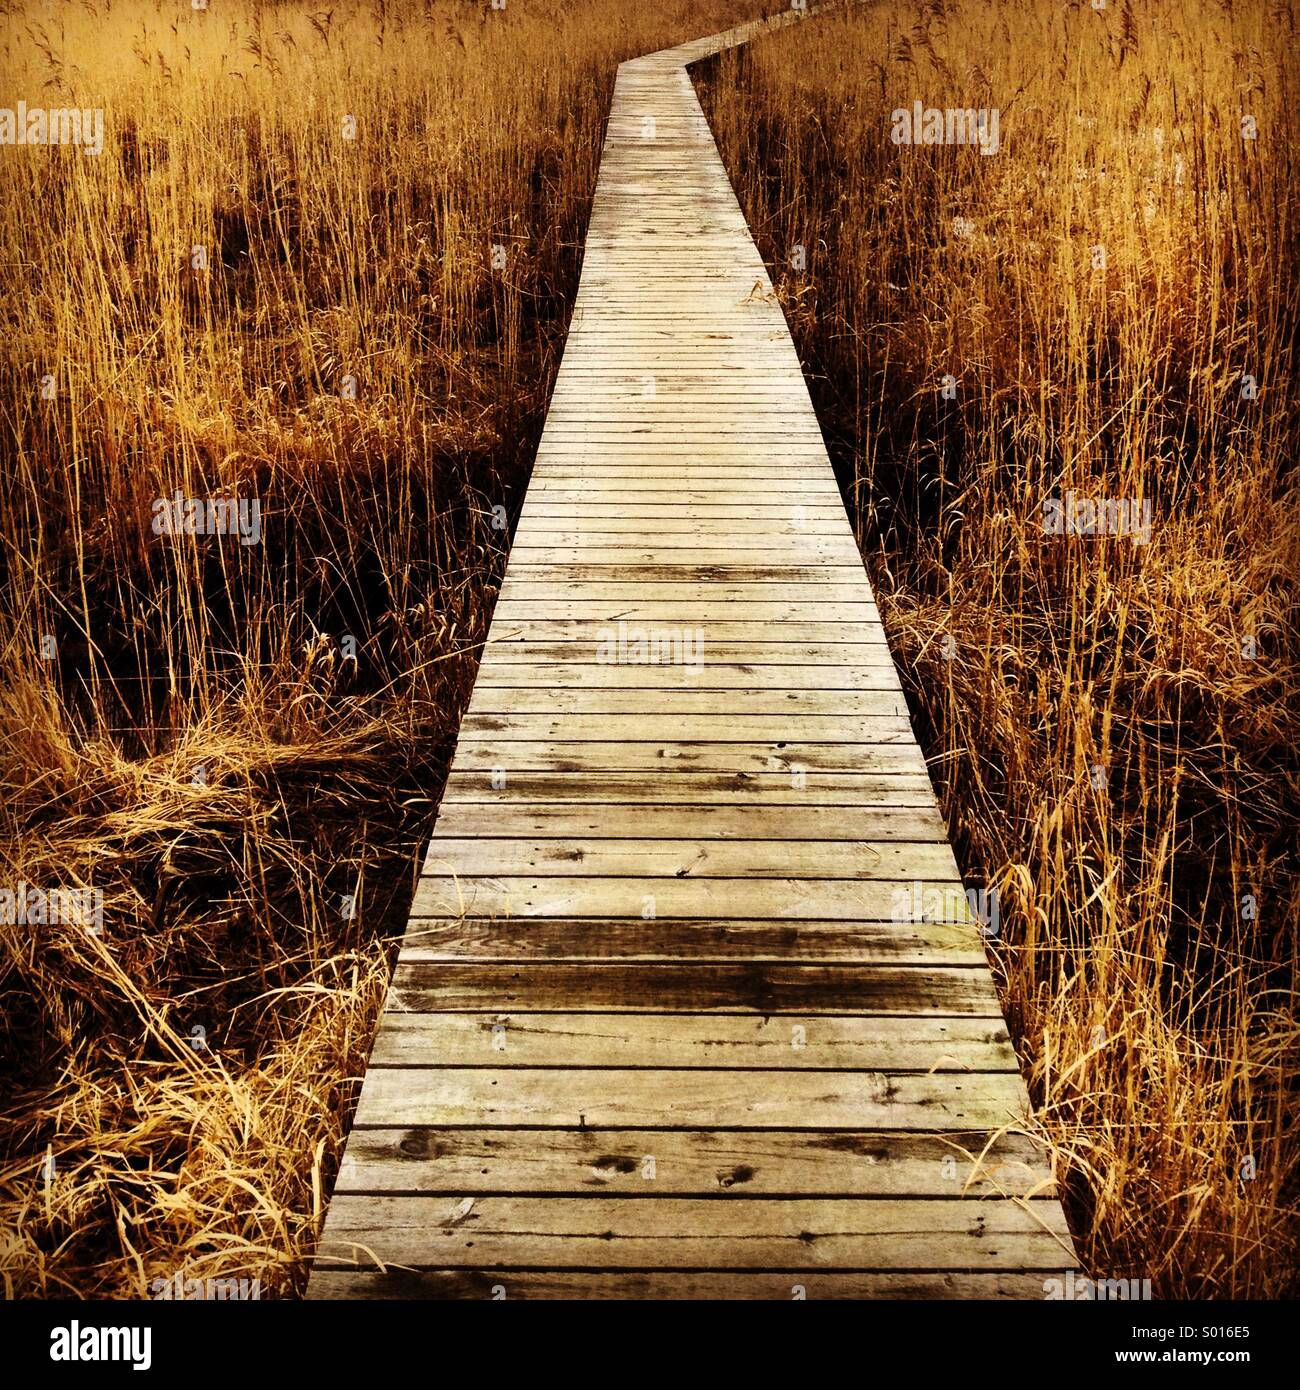 A wooden walkway through fields of reeds - Stock Image